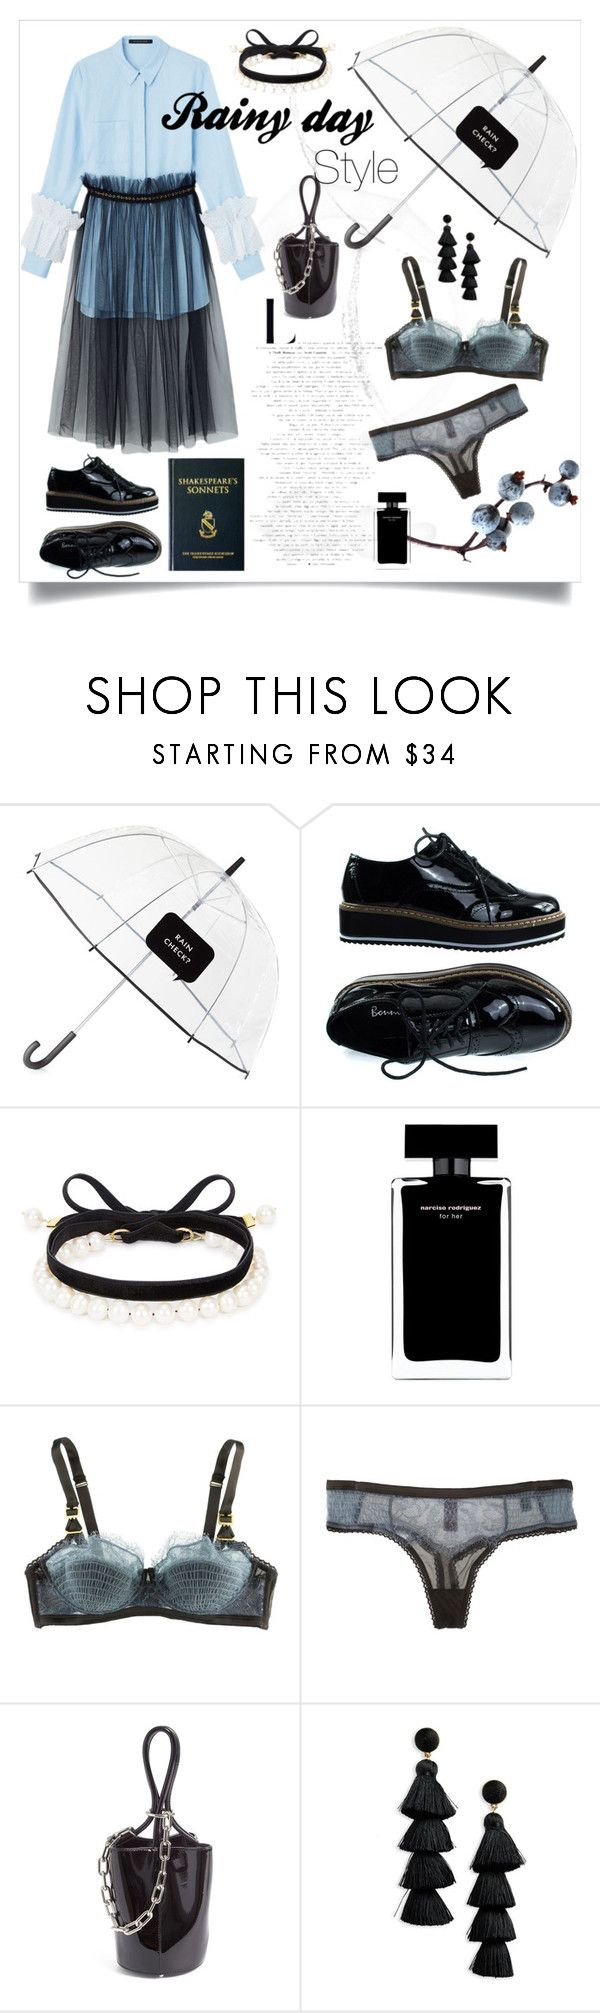 """A Rainy Day"" by agate-mu ❤ liked on Polyvore featuring Kate Spade, Magda Butrym, Narciso Rodriguez, STELLA McCARTNEY, Alexander Wang and BaubleBar"